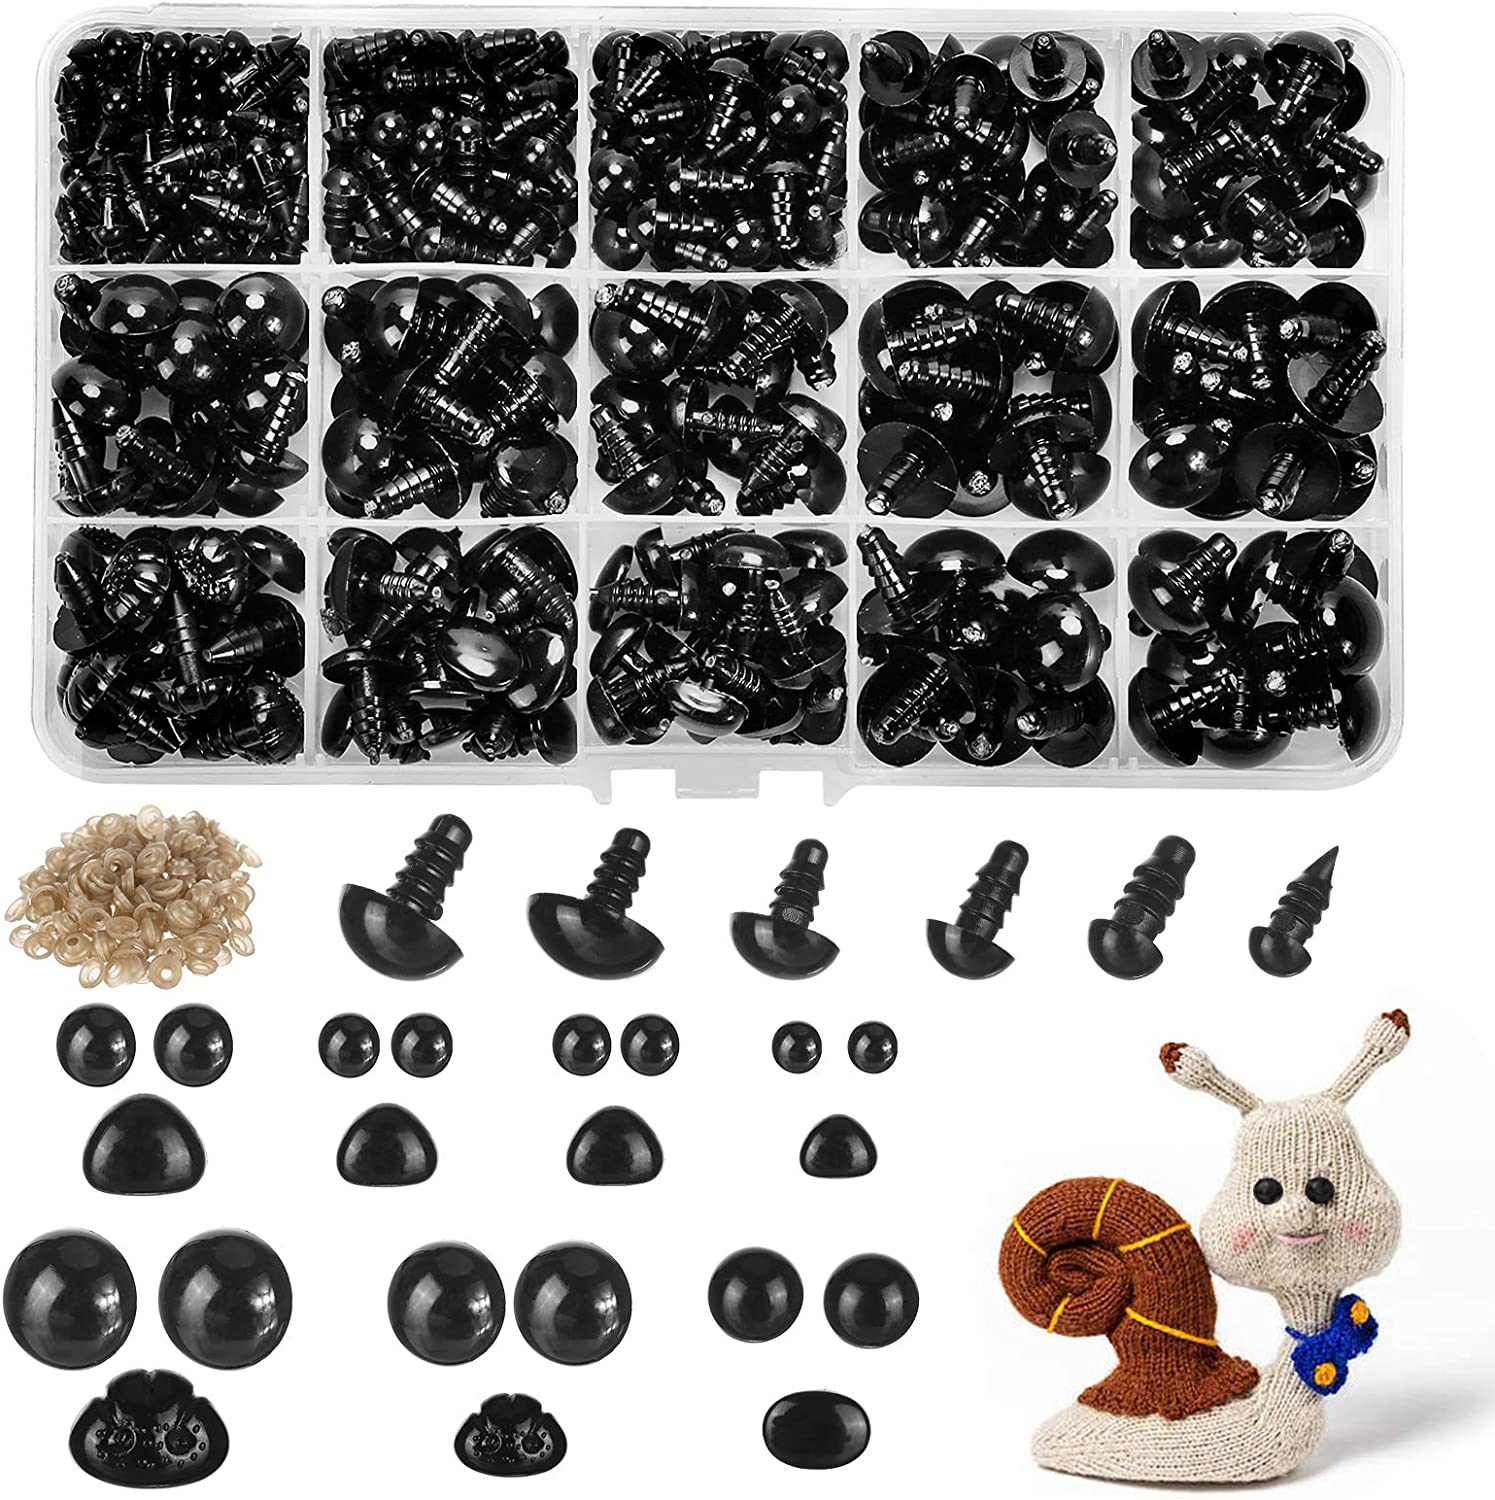 680pcs Plastic Safety Eyes and Noses with Washers Craft Doll Eyes Black Safty Eyes for Amigurumi Puppet Plush Animal and Teddy Bear